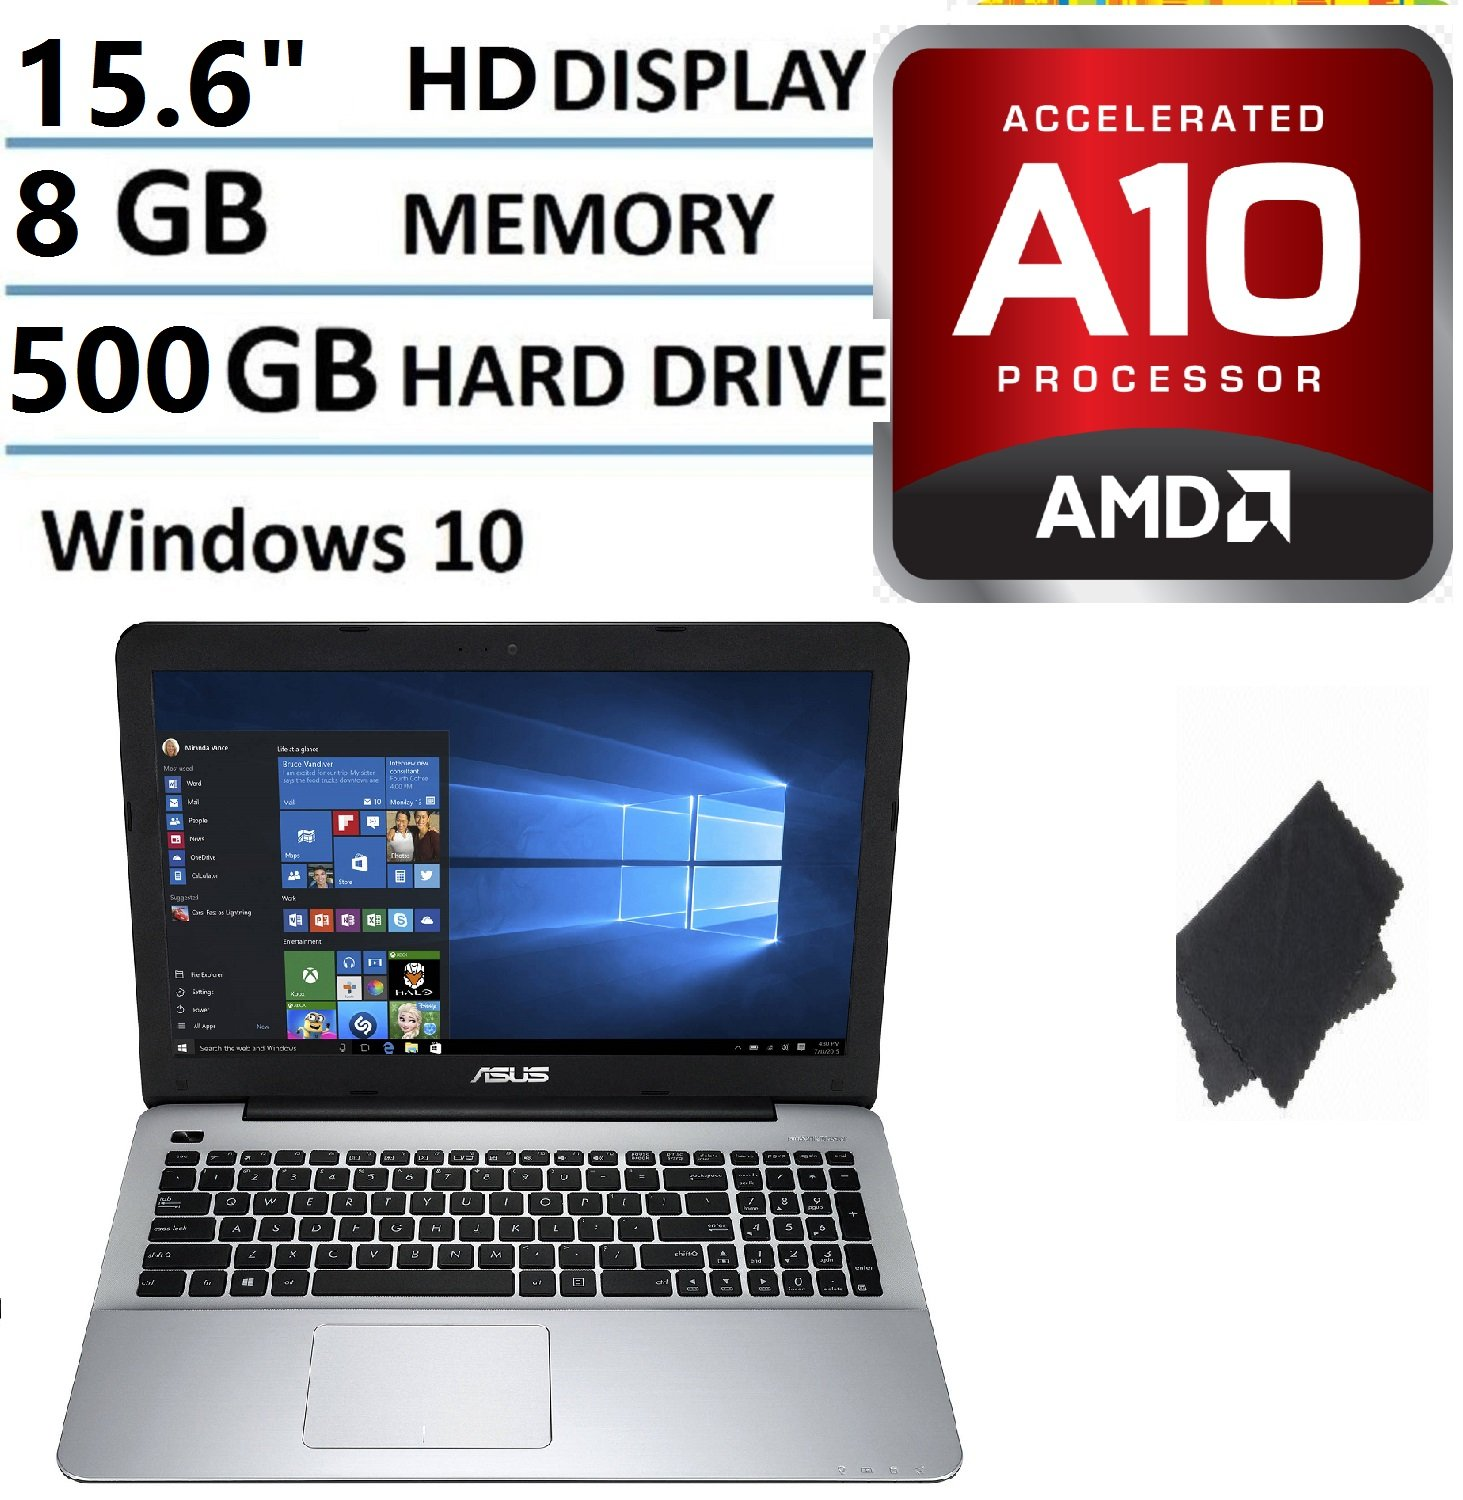 Asus amd a10 laptop - Black friday deal sears